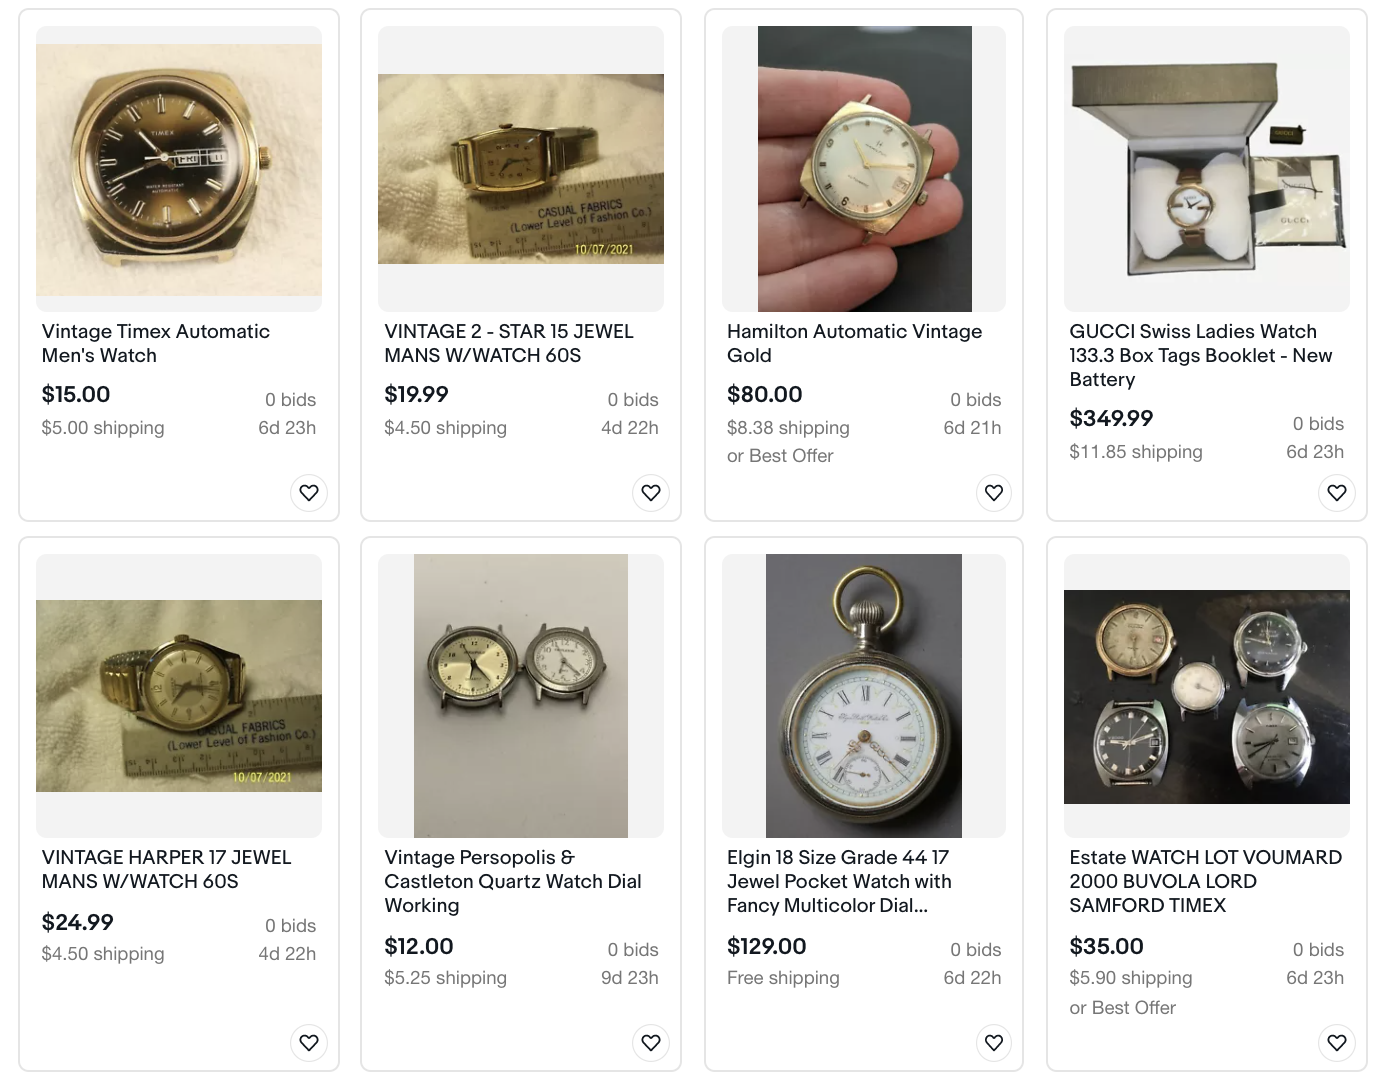 Top tips to selling on eBay: search results for vintage watches